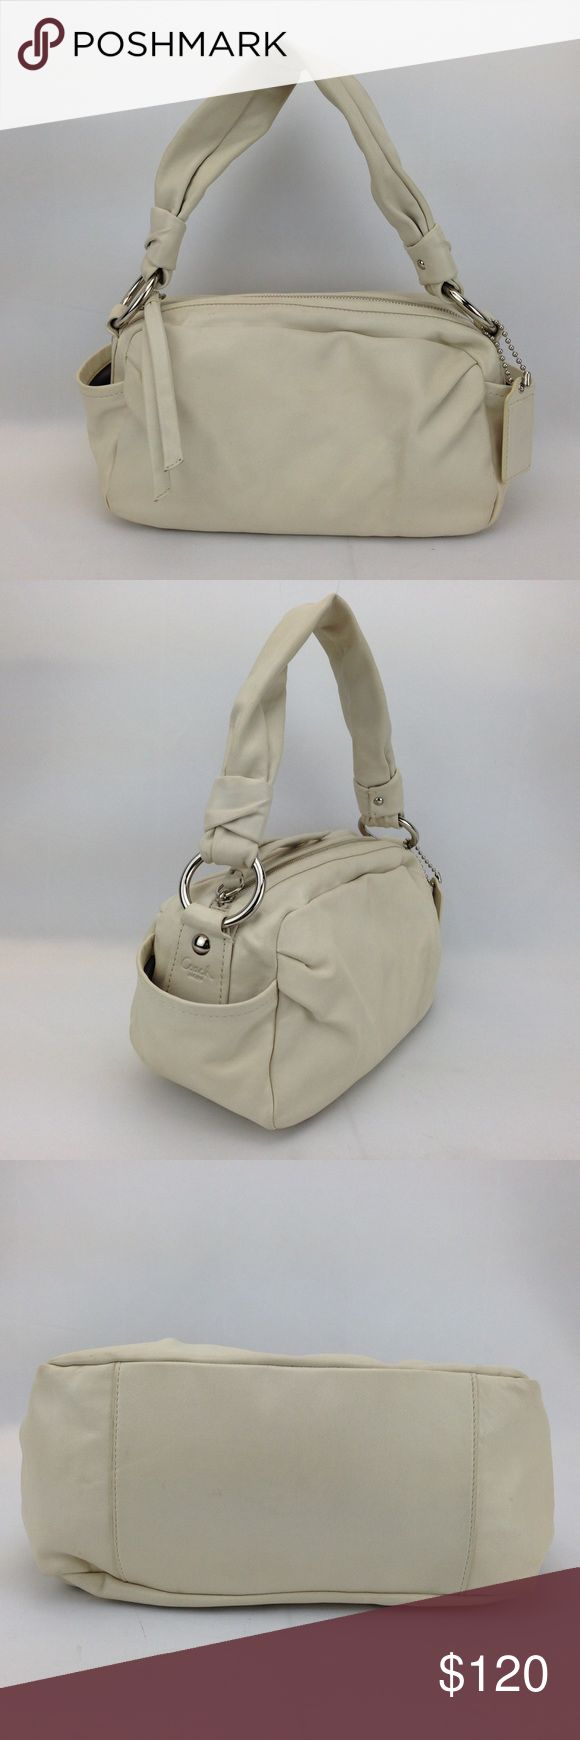 """COACH Cream Twister Leather Hobo Shoulder Bag Coach Parker Twister Leather Shoulder Hobo Bag in great condition! 100% pre-owned authentic. Style 13442 Exterior features: cream leather w/ tonal stitching, silver-tone hardware, hanging leather logo tag, side open pockets, logo embossed into leather on one side, twisted leather shoulder strap w/ 8"""" drop, zip top closure w/ leather zipper pull. Interior features:grey woven lining, cream leather logo patch, zippered pocket on 1 wall w/ leather…"""